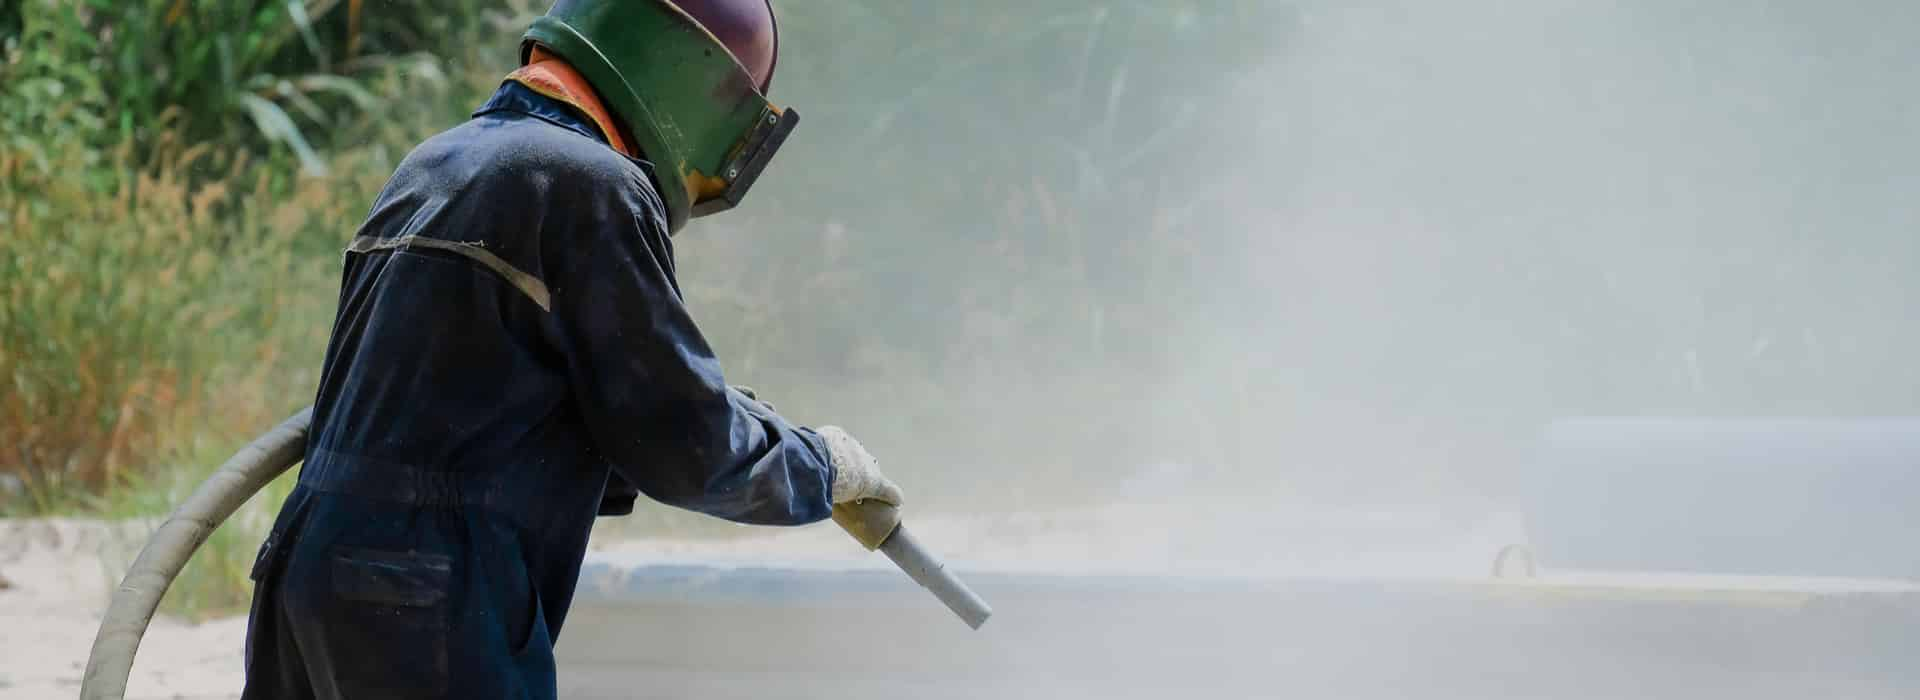 Paint Removal with Abrasive Blasting